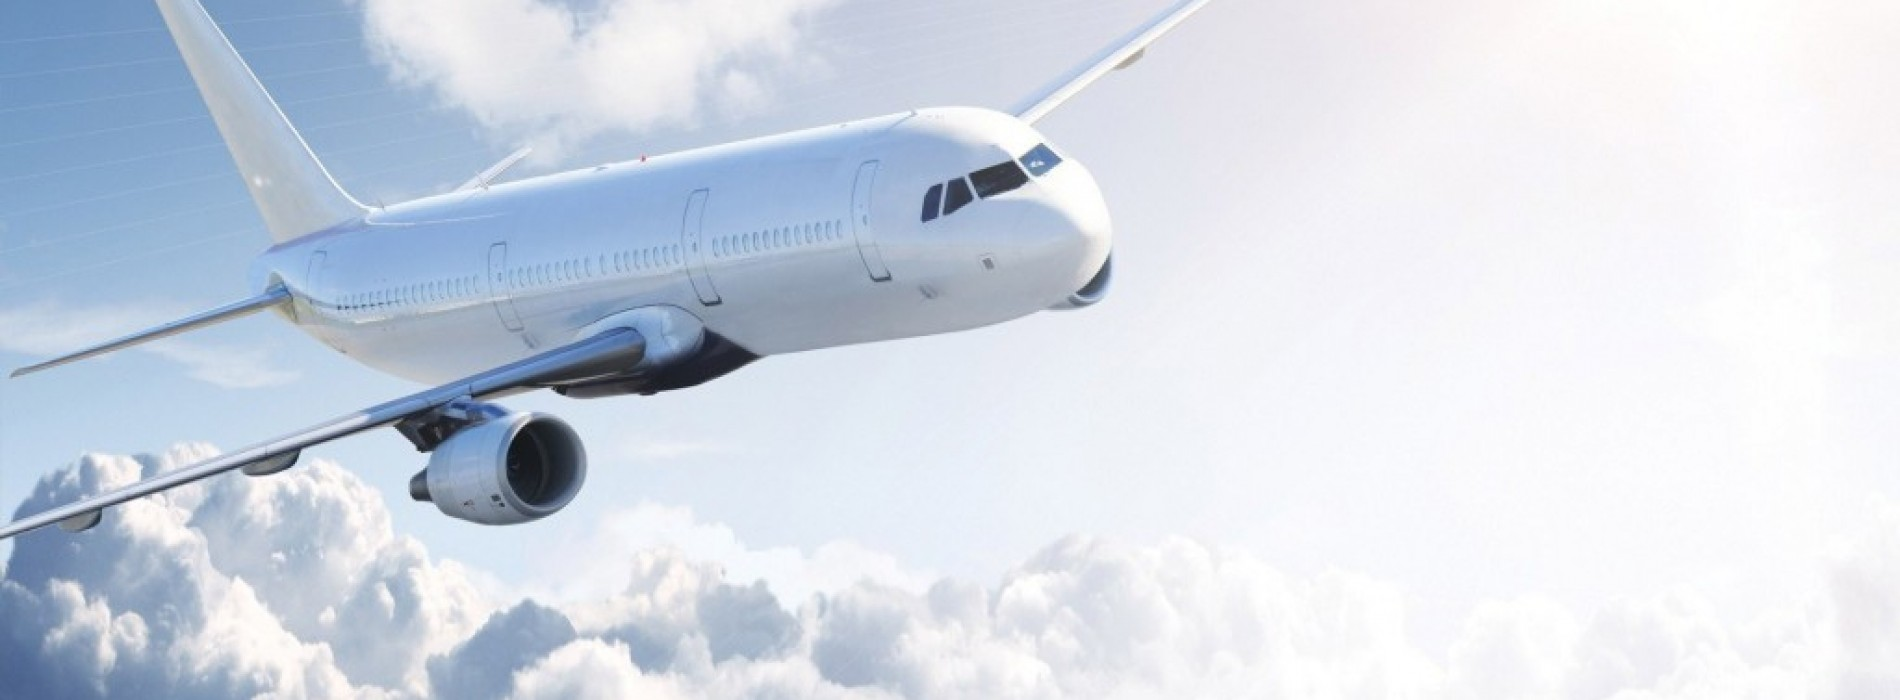 Indian aviation market will surpass US and China in 15-20